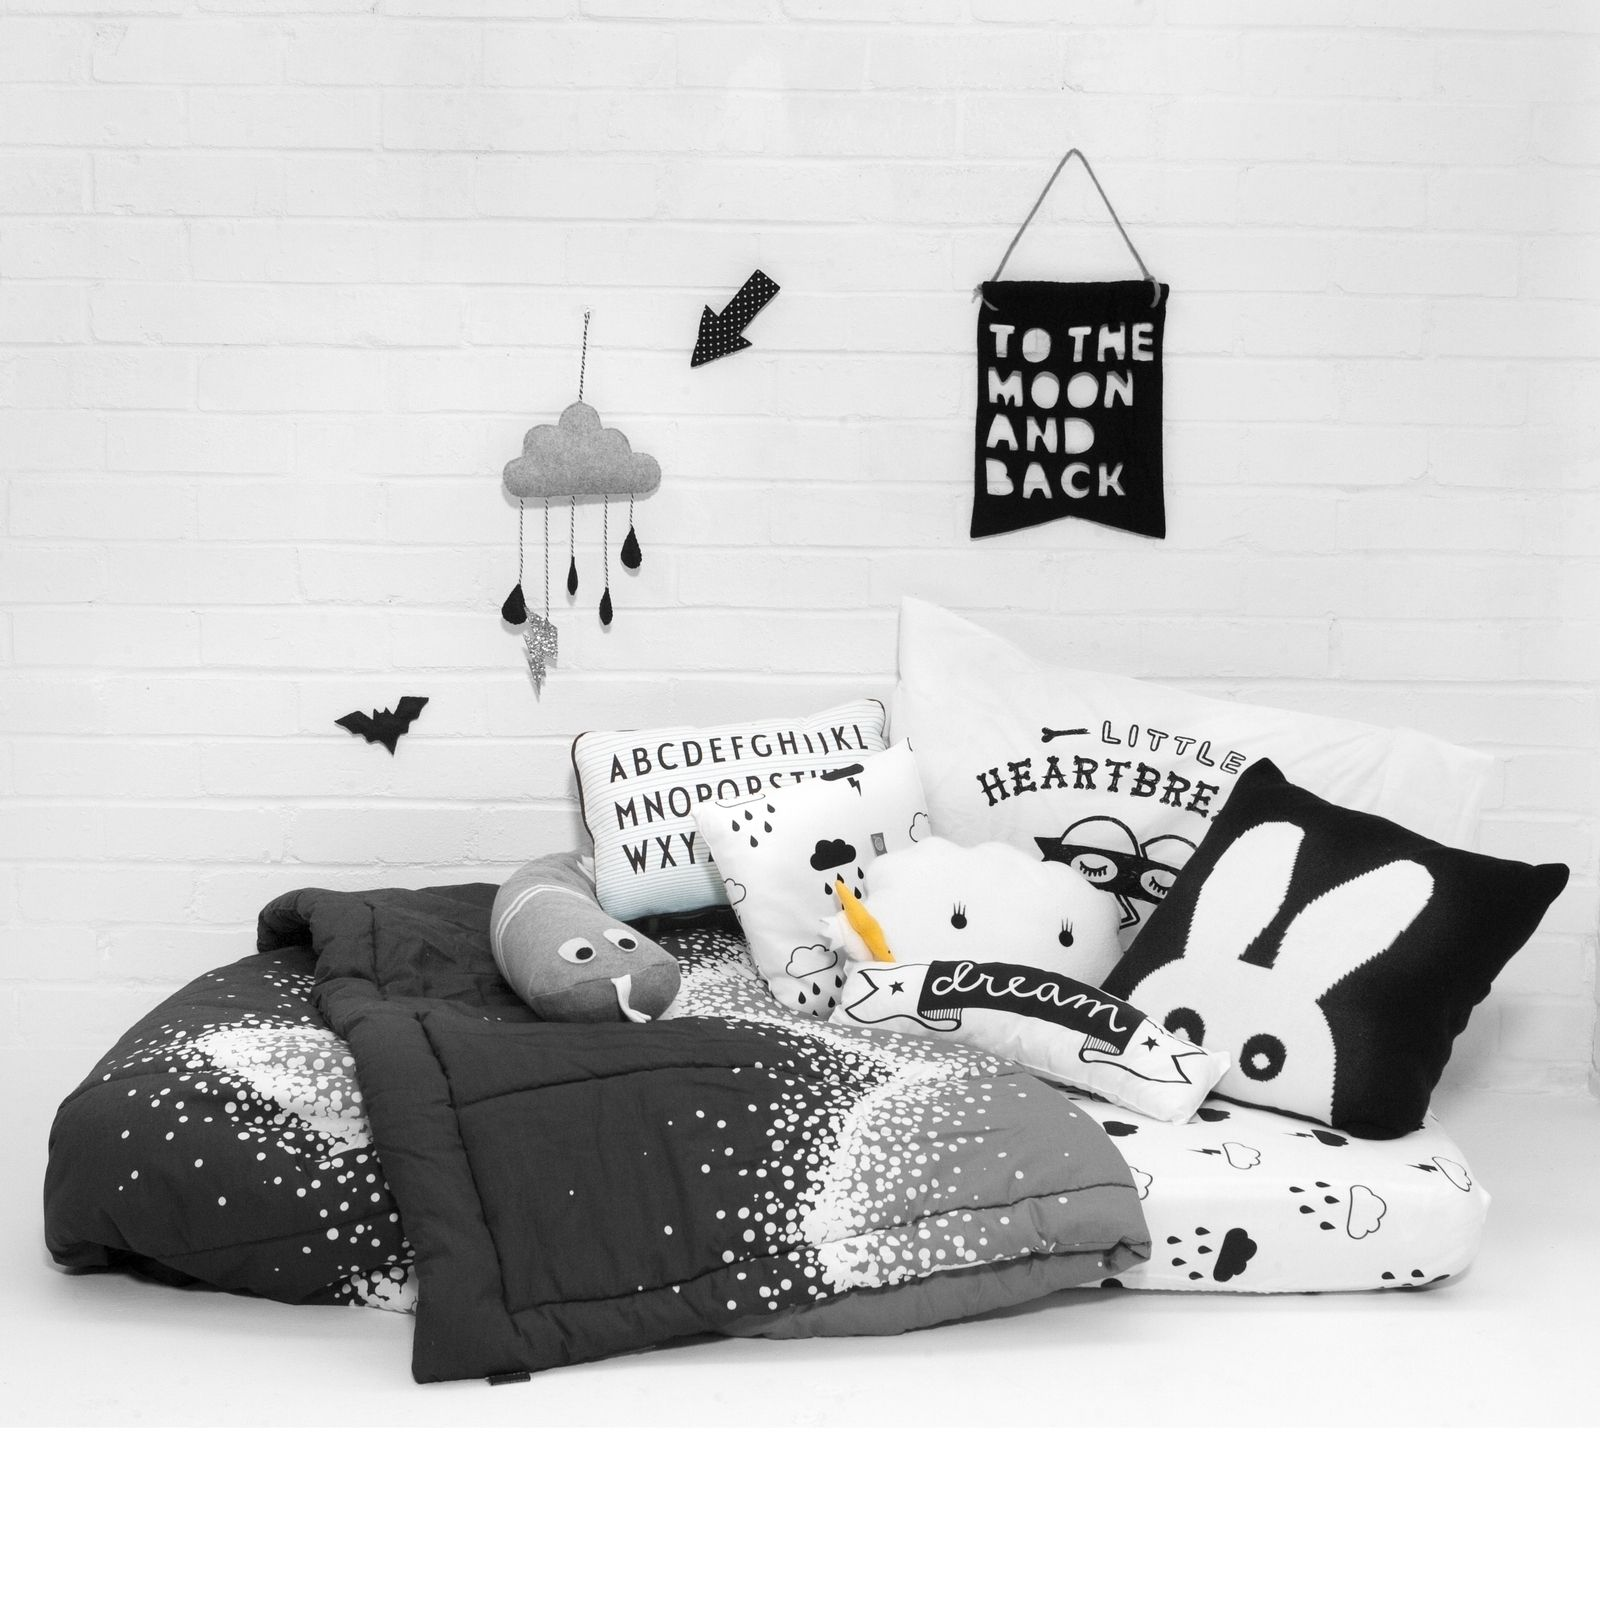 We finally got around to doing a few photos in our (not so) new space yesterday! We are hoping to bring you lots more in the coming weeks and months. For now here are some of our favourite monochrome bedding and cushion products. We are loving the new medium size ricestorm clouds from Noodoll! #thismodernlife #noodoll #normanncopenhagen #moonandback #velveteenbabies #miniwilla #designletters #tobiasandthebear